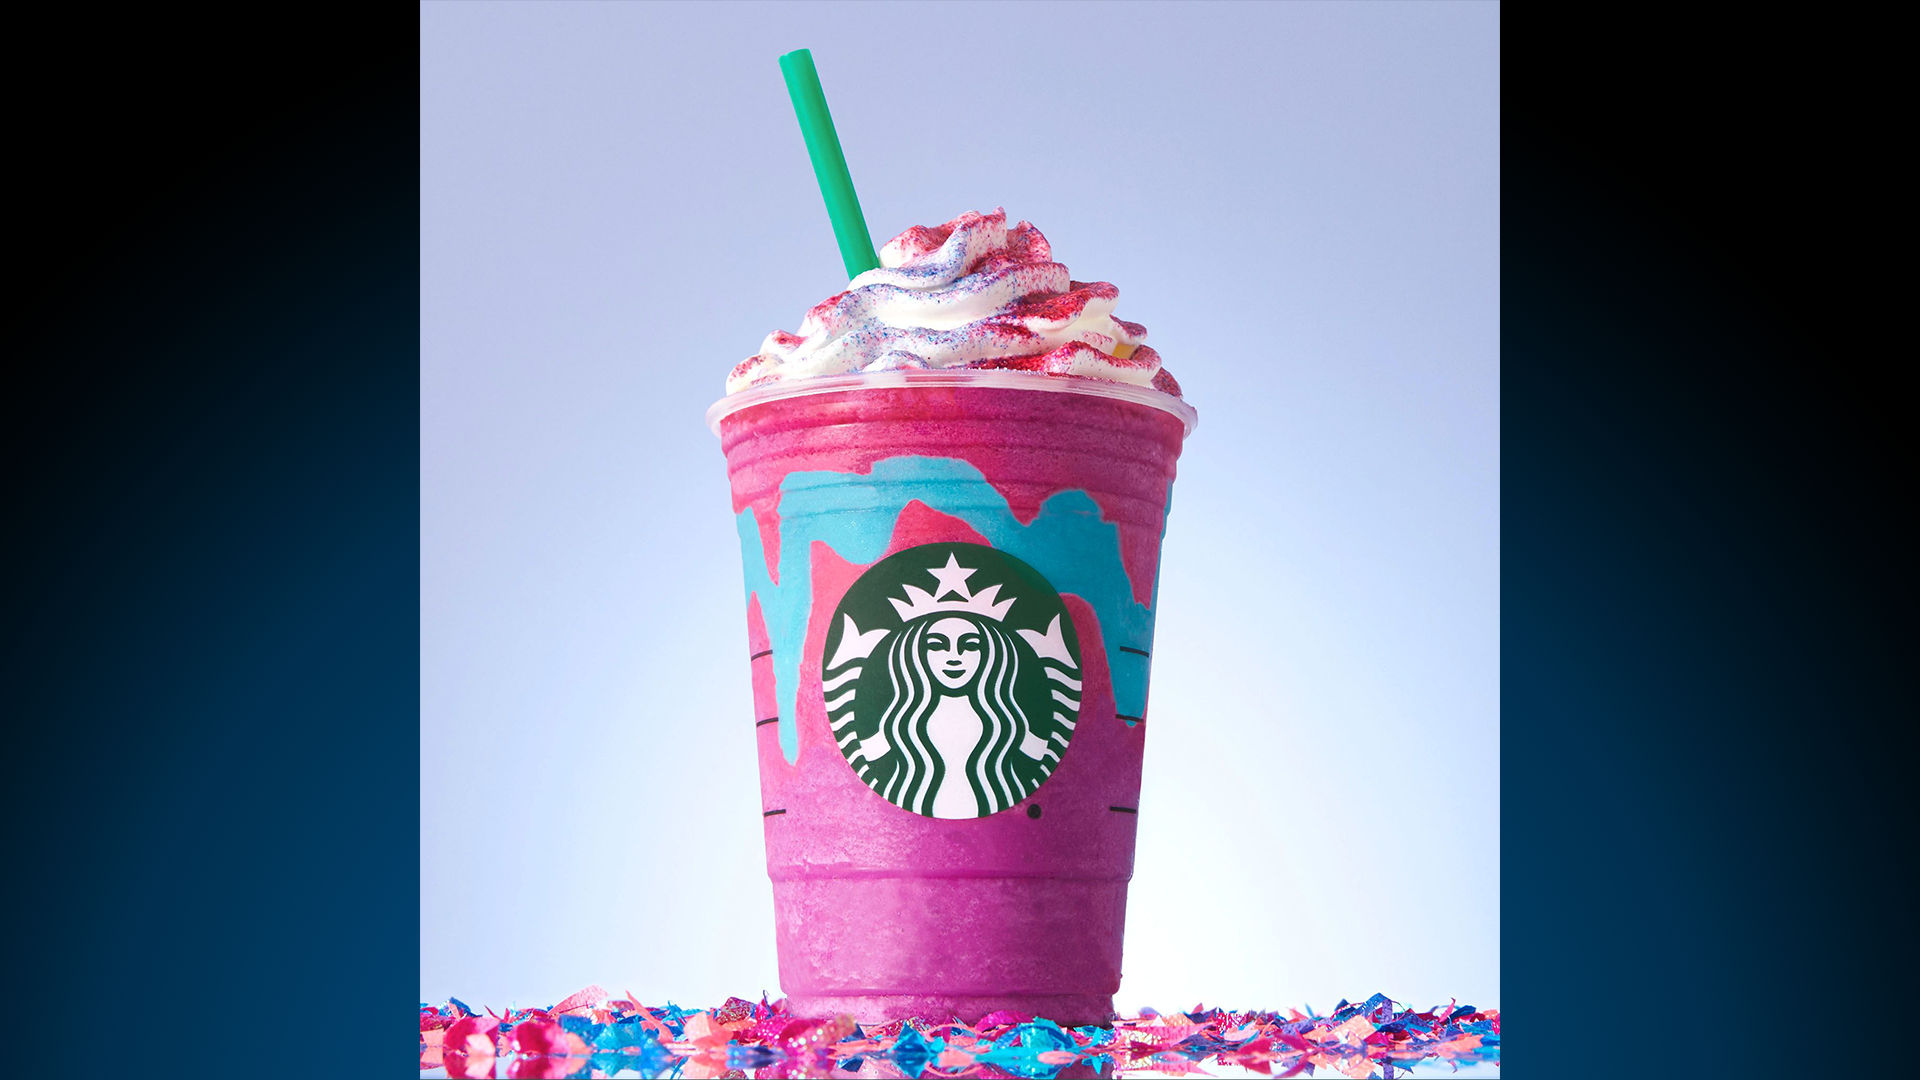 Starbucks Is Serving Bubblegum and Cotton Candy Frapps —But Theres a Catch